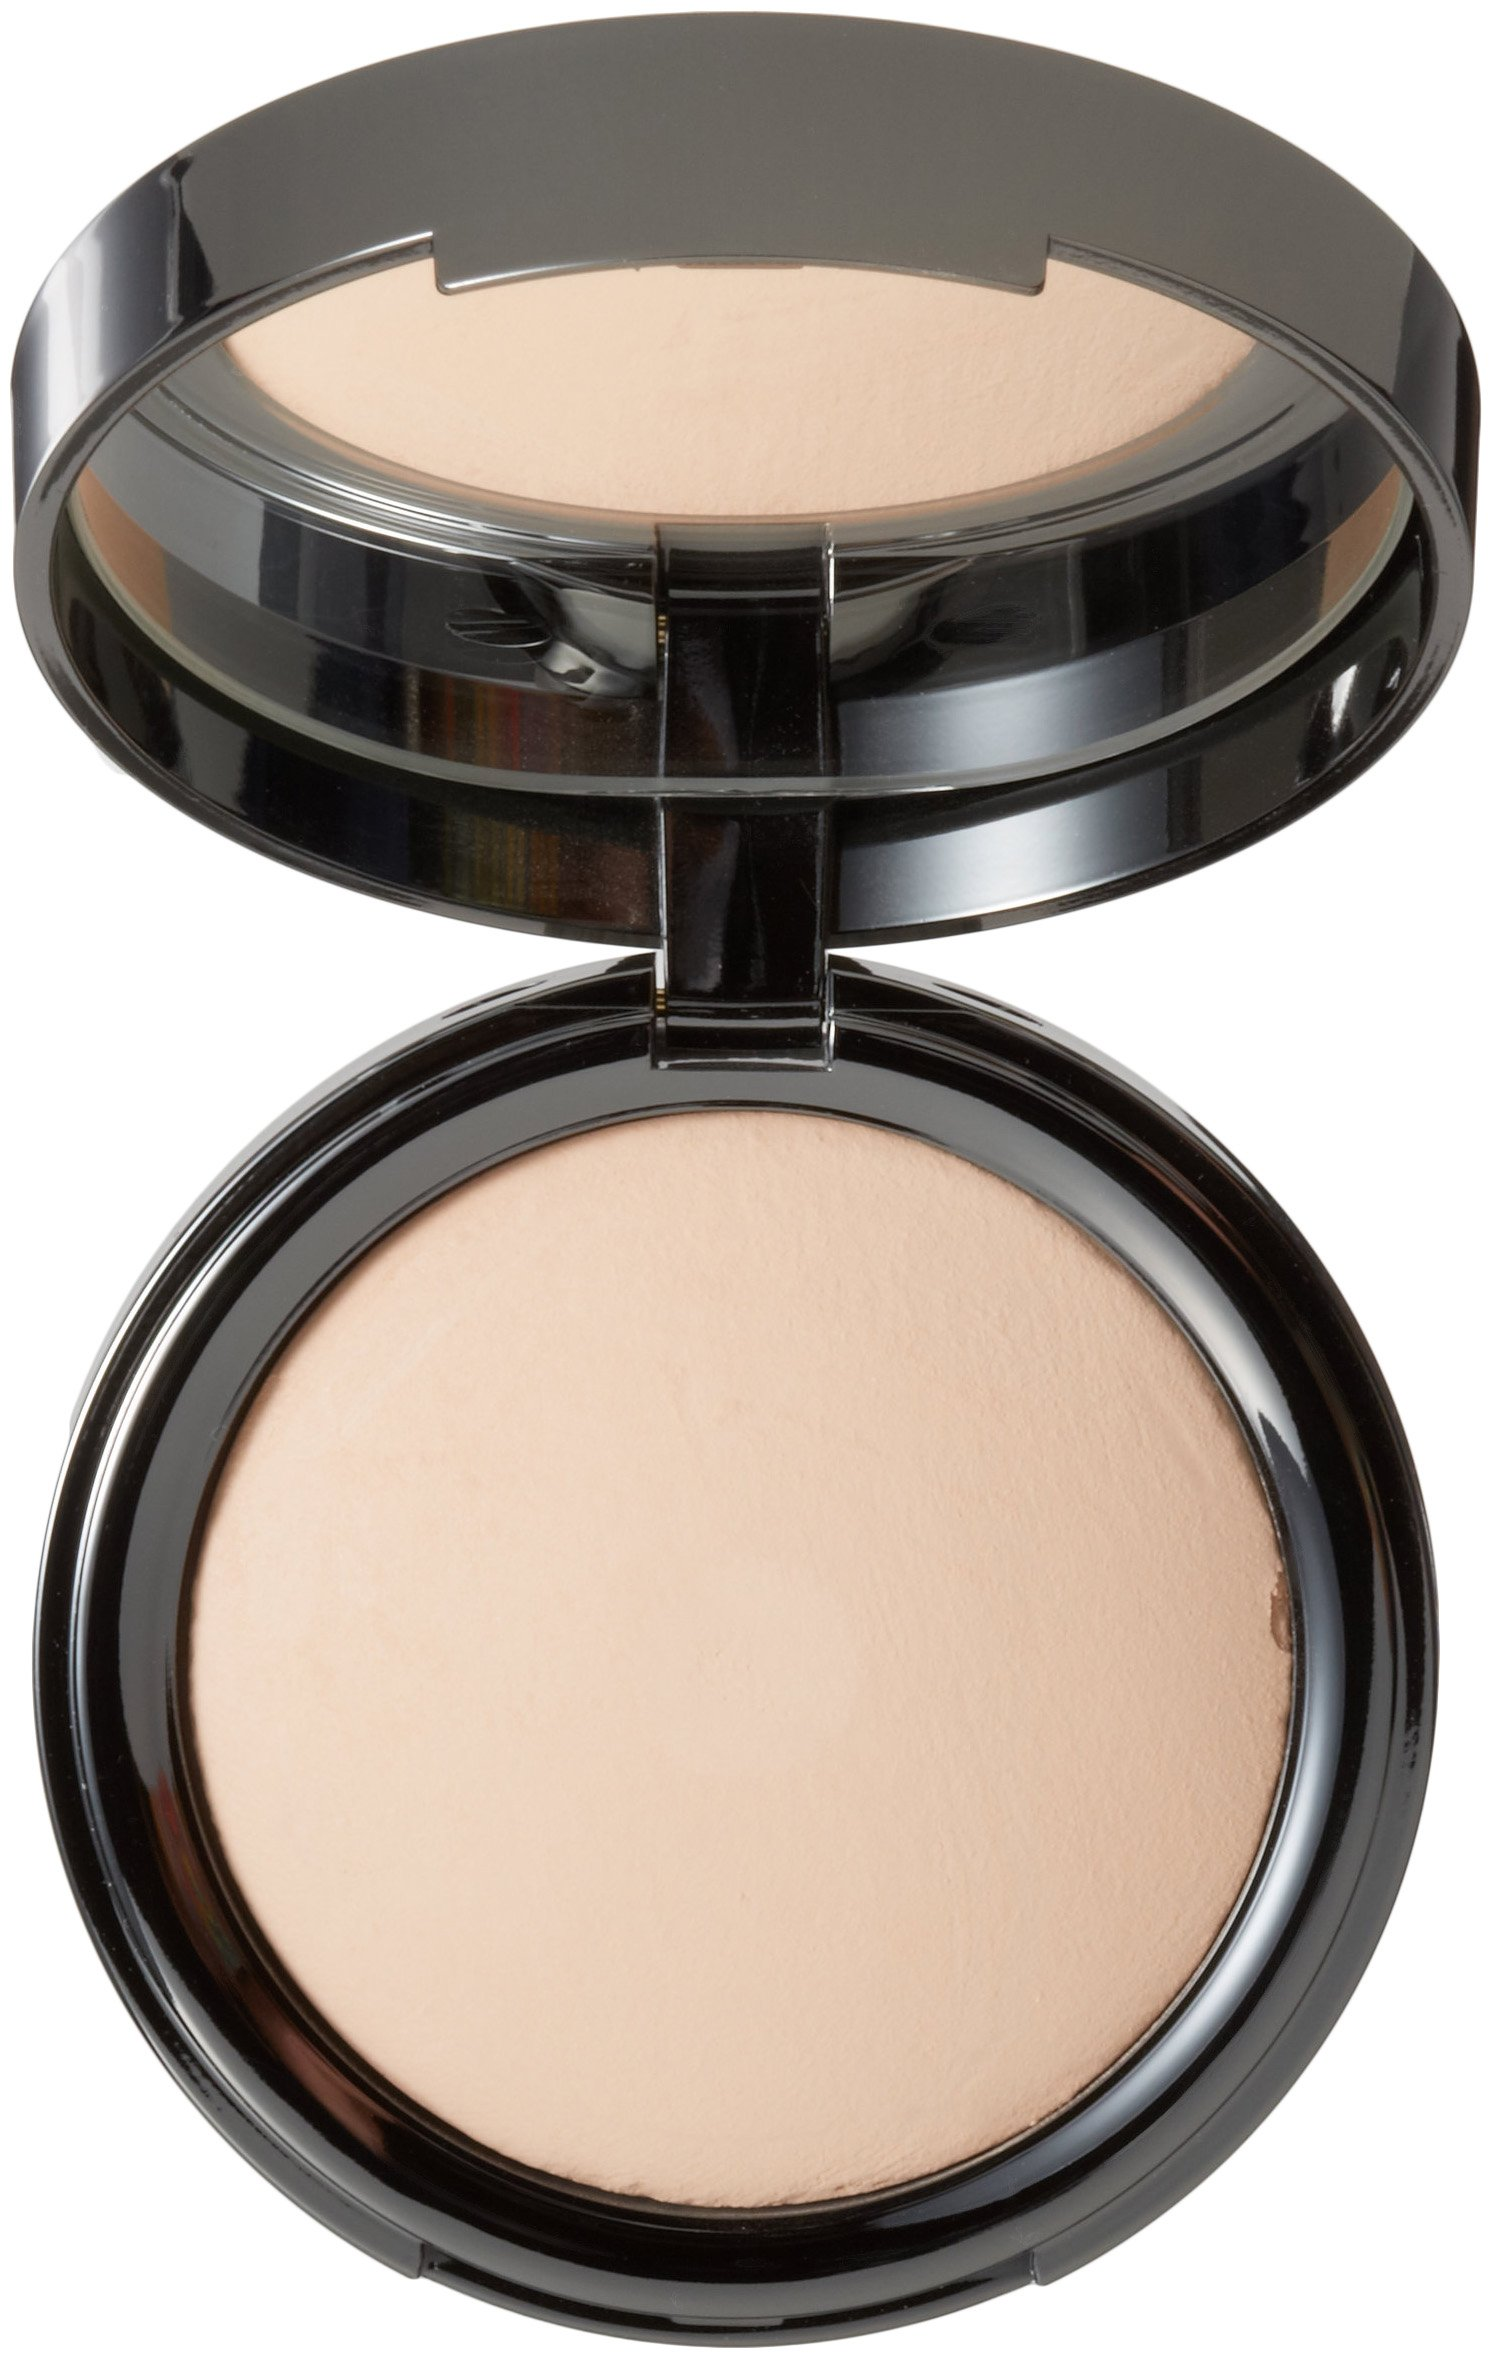 LORAC POREfection Baked Perfecting Powder, PF2 Light by LORAC (Image #6)